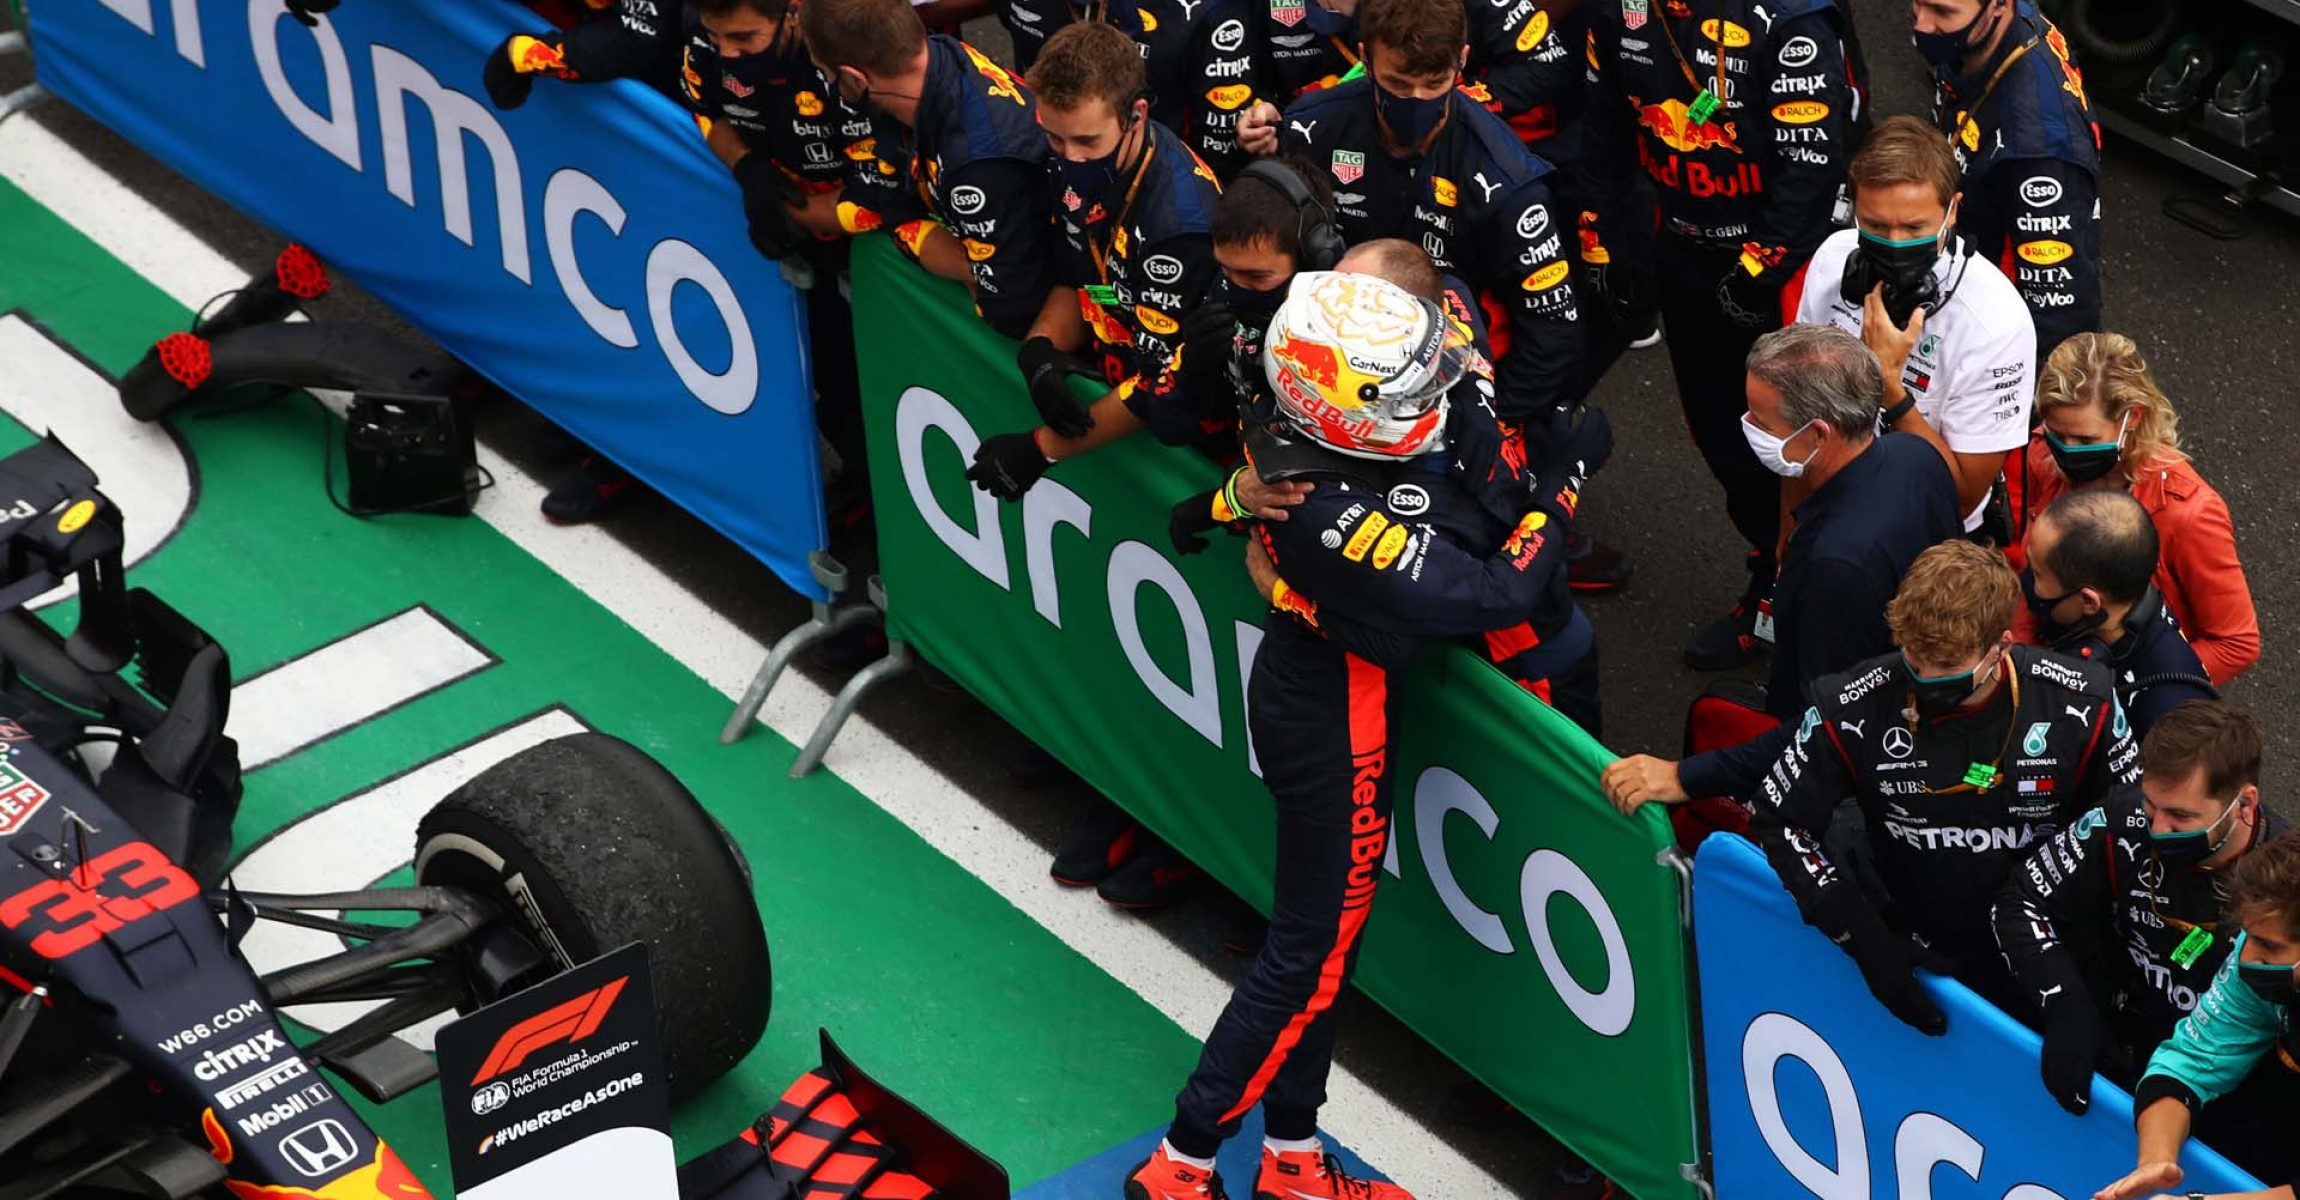 BUDAPEST, HUNGARY - JULY 19: Second placed Max Verstappen of Netherlands and Red Bull Racing celebrates with team members in parc ferme after the Formula One Grand Prix of Hungary at Hungaroring on July 19, 2020 in Budapest, Hungary. (Photo by Mark Thompson/Getty Images) // Getty Images / Red Bull Content Pool  // AP-24P7N6CK11W11 // Usage for editorial use only //